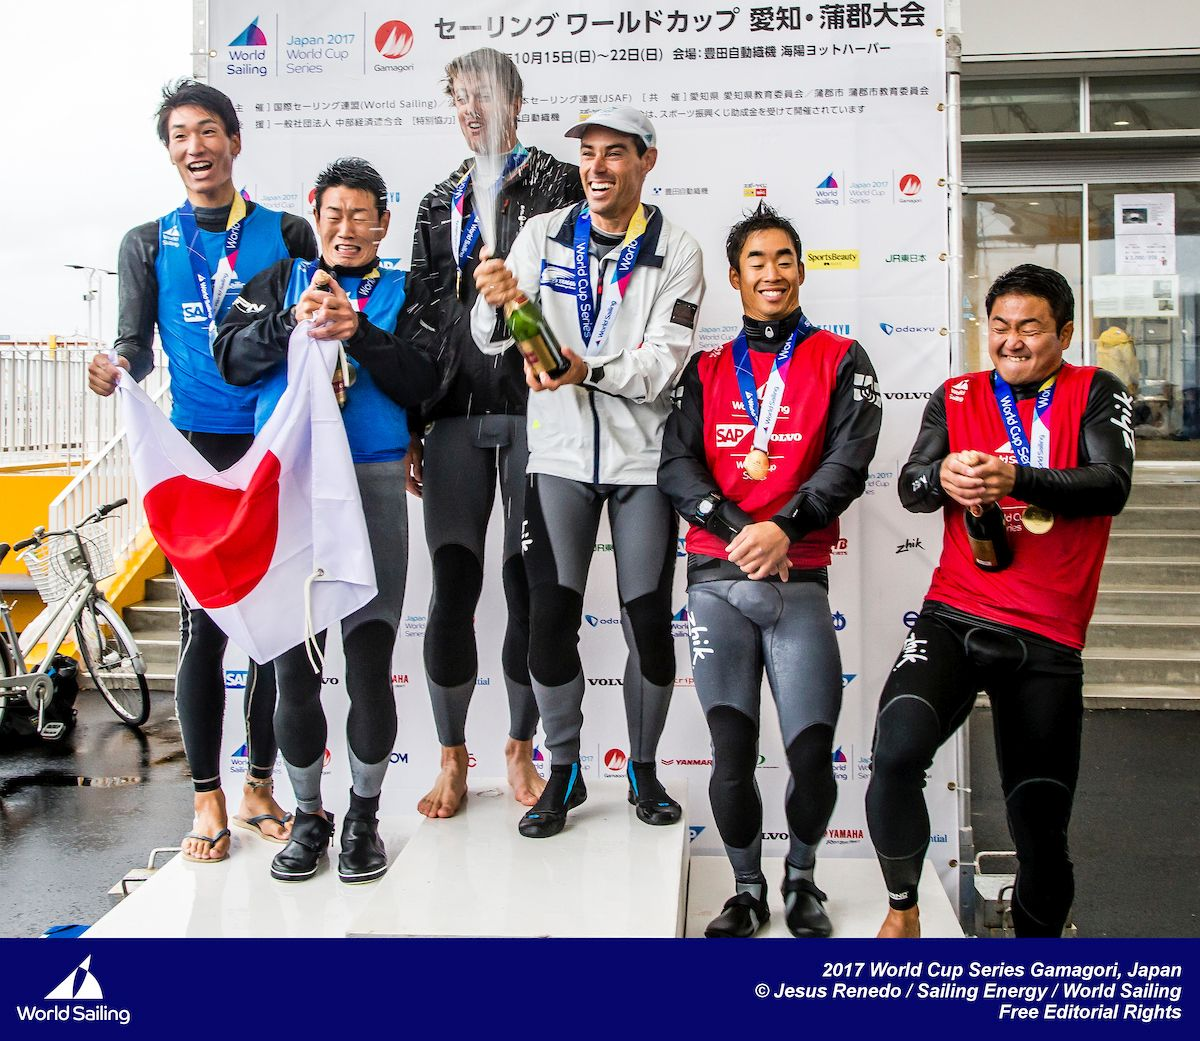 Mat Belcher and Will Ryan on top of the podium in Japan. Photo Jesus Renedo/Sailing Energy.